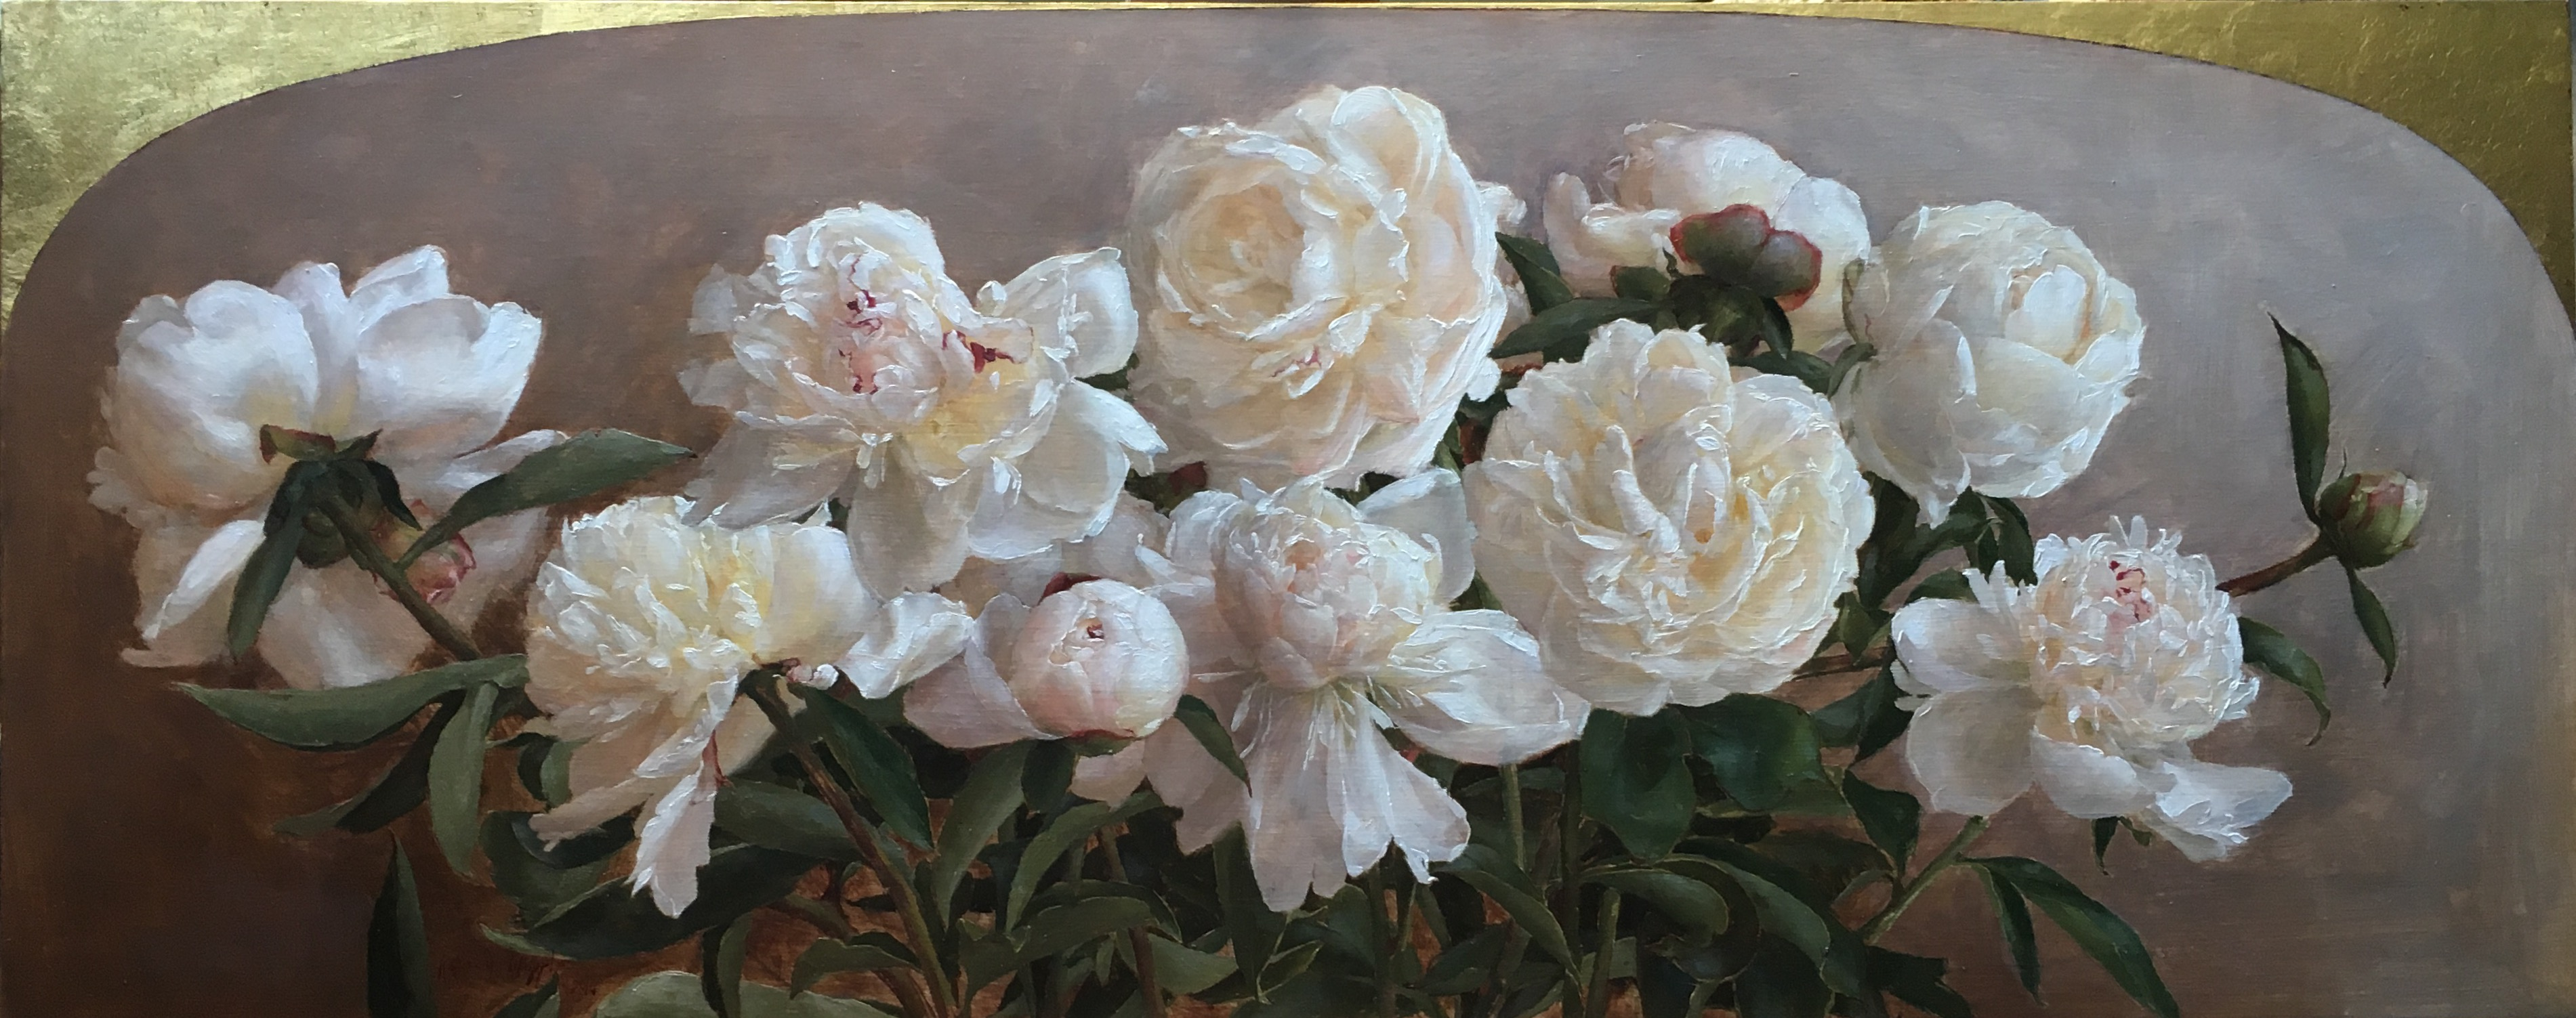 A Celebration of Peonies